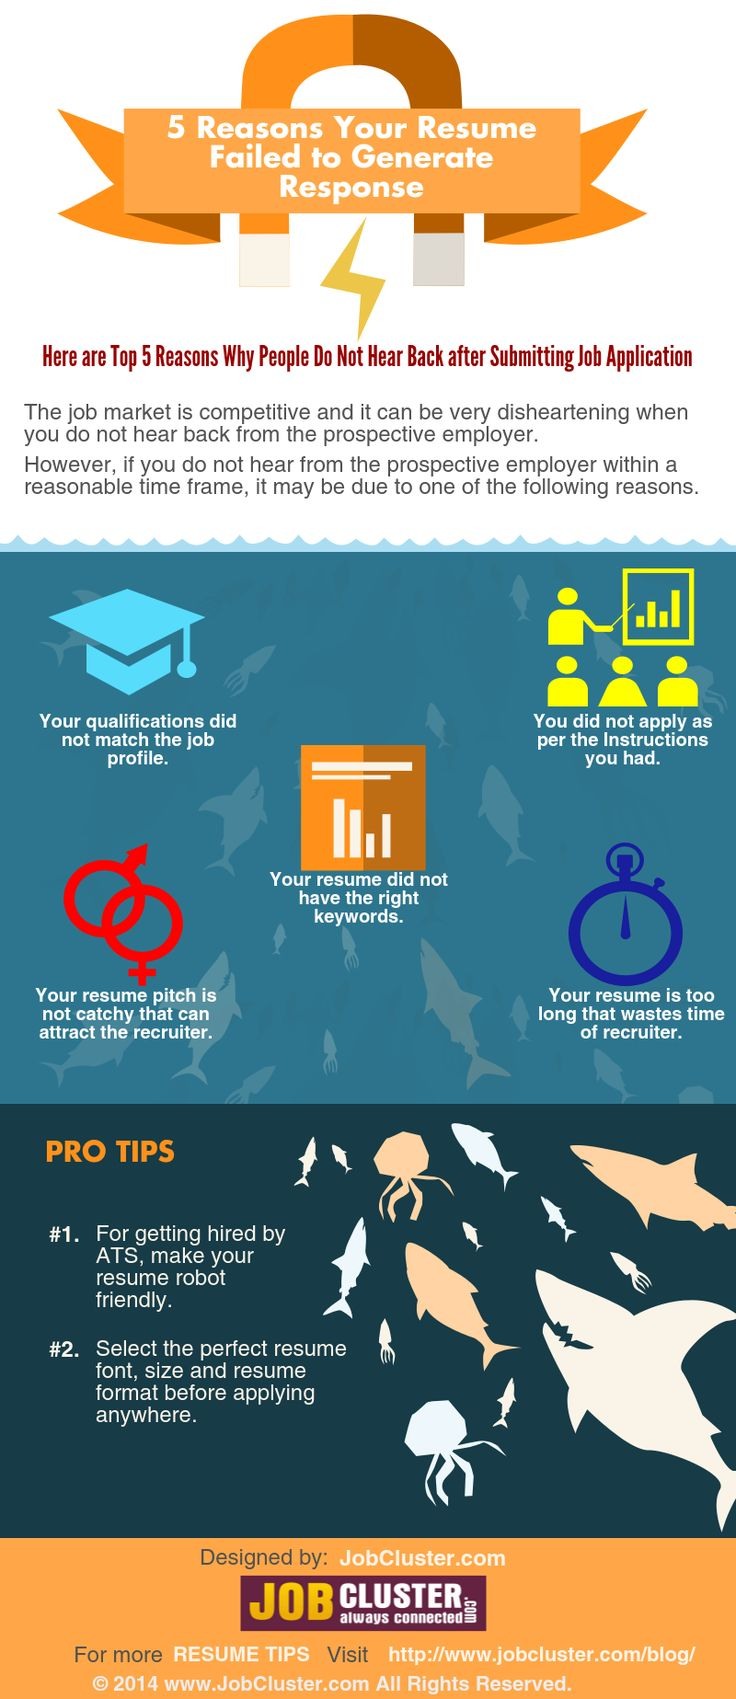 5 Reasons for Resume Pitfalls infographic